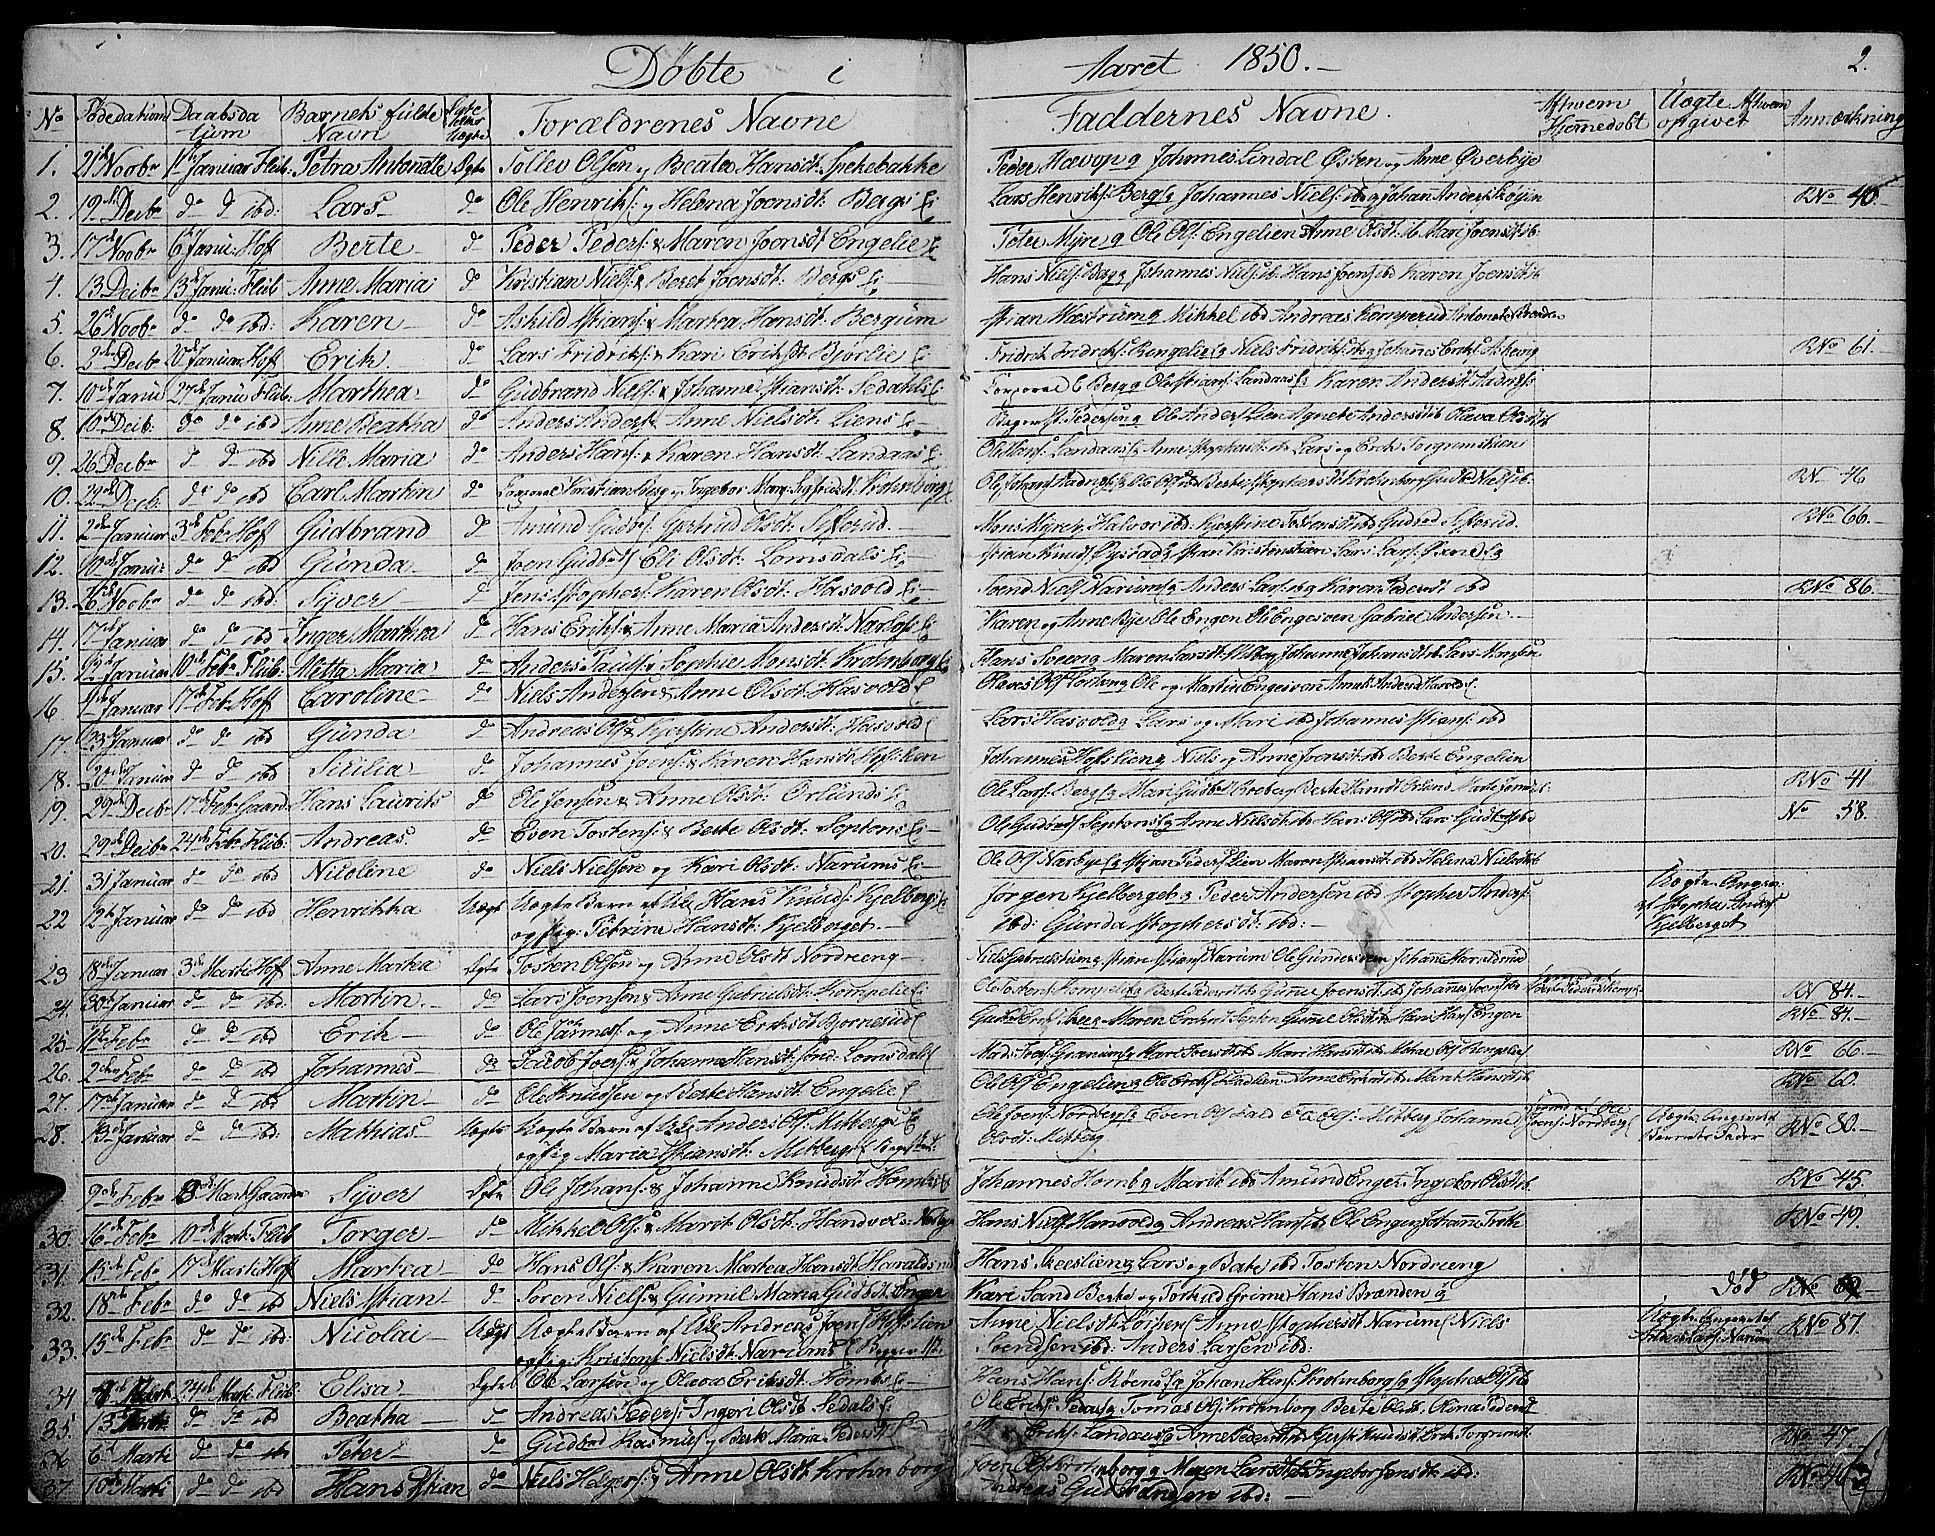 SAH, Søndre Land prestekontor, L/L0001: Parish register (copy) no. 1, 1849-1883, p. 2